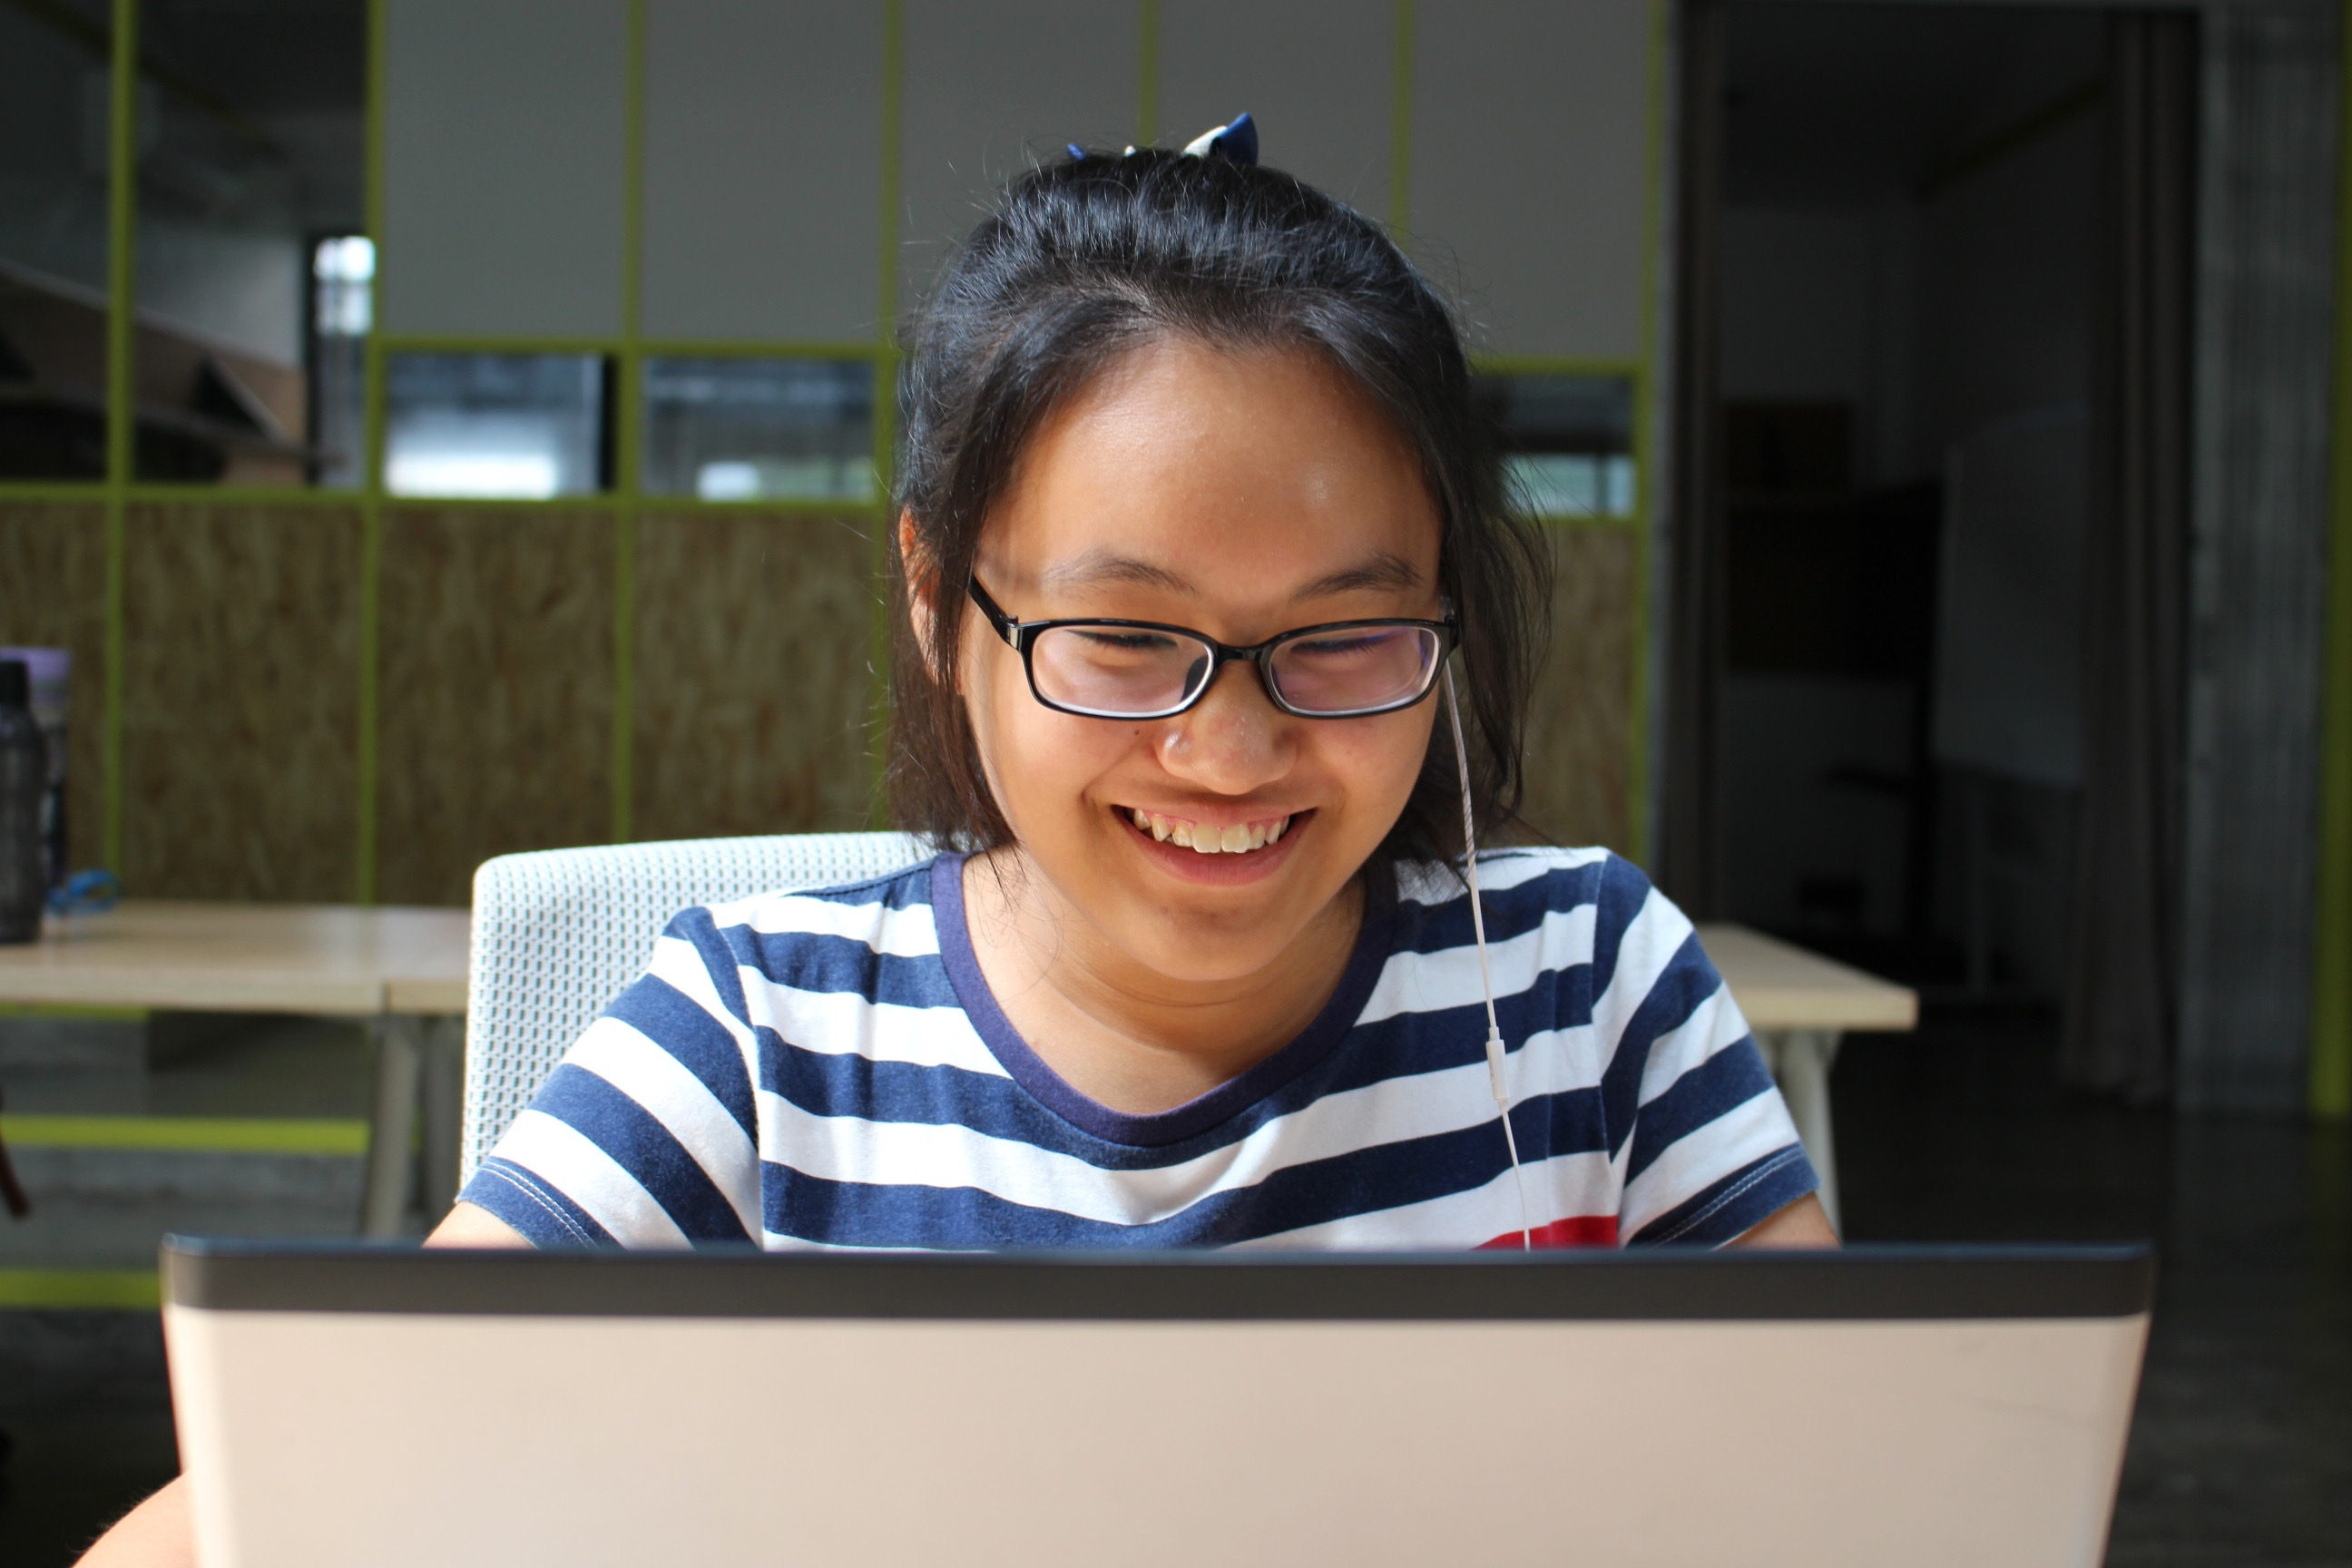 intern smiling at her computer at work